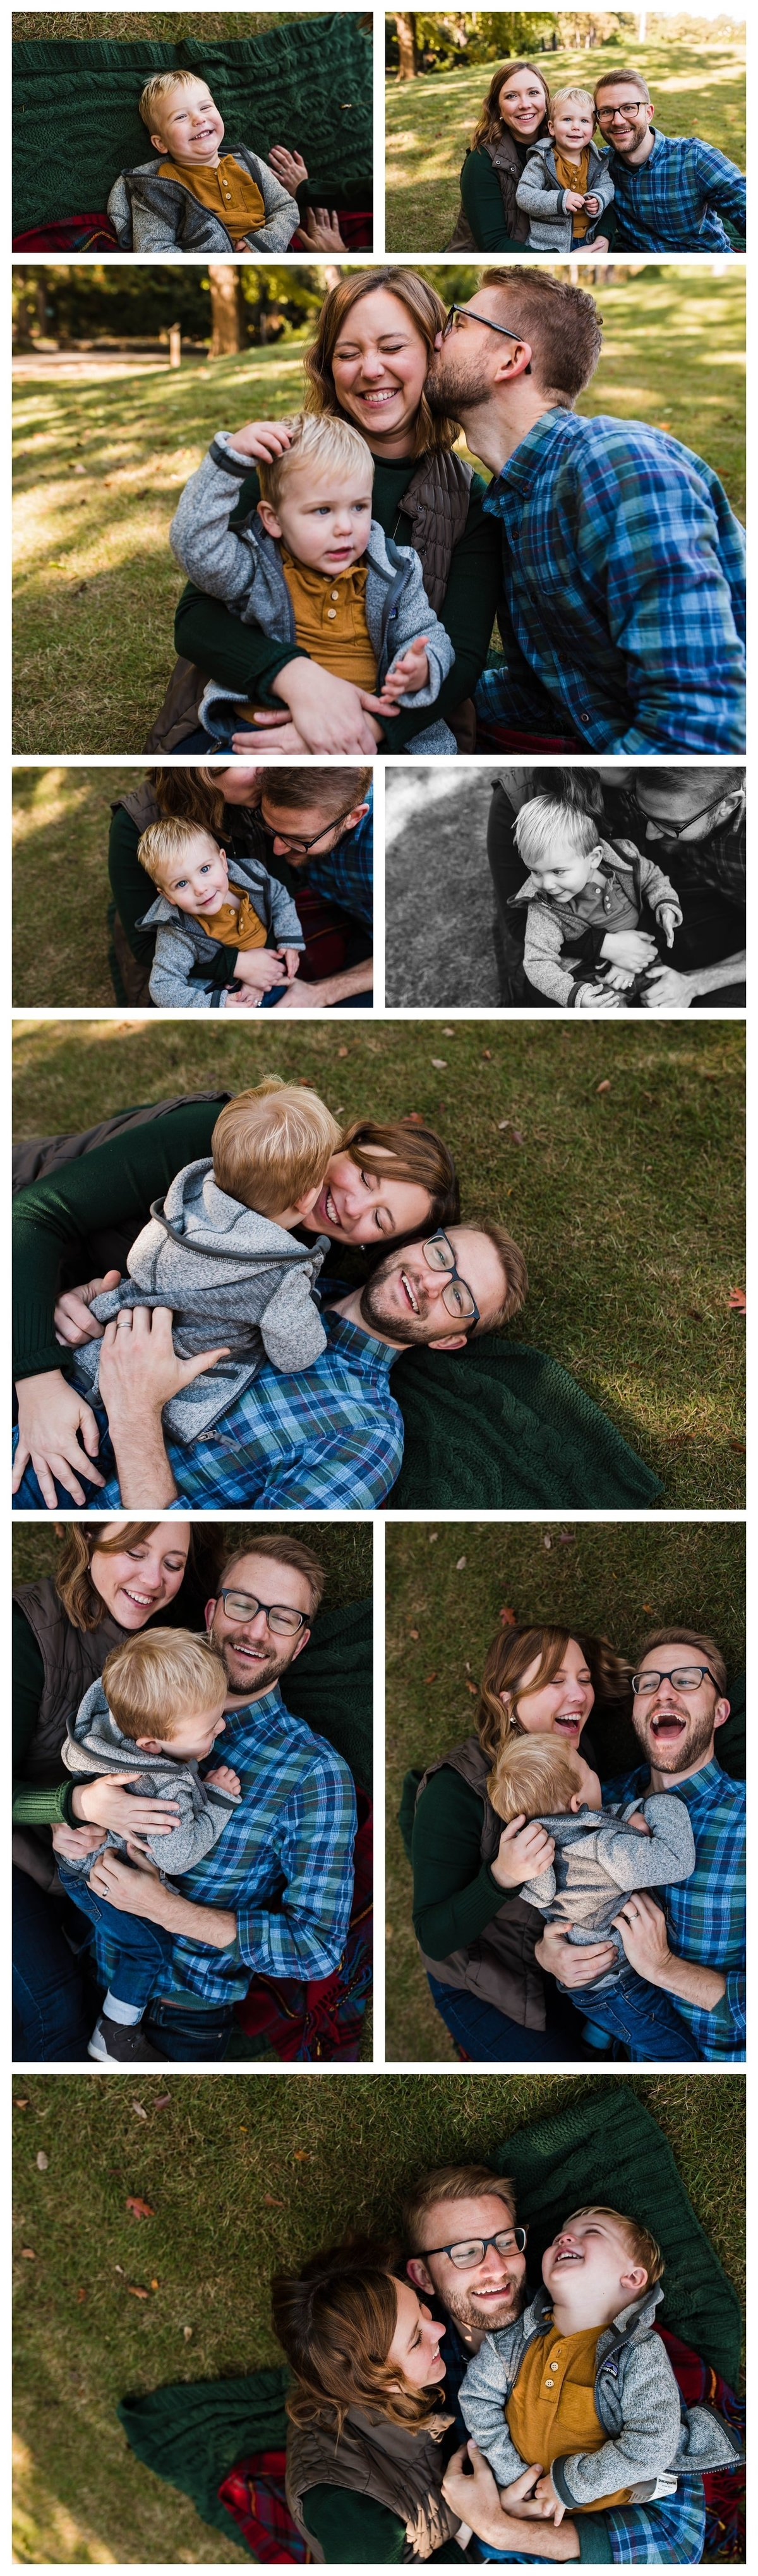 Birmingham Family Photographer Bang Images (3)